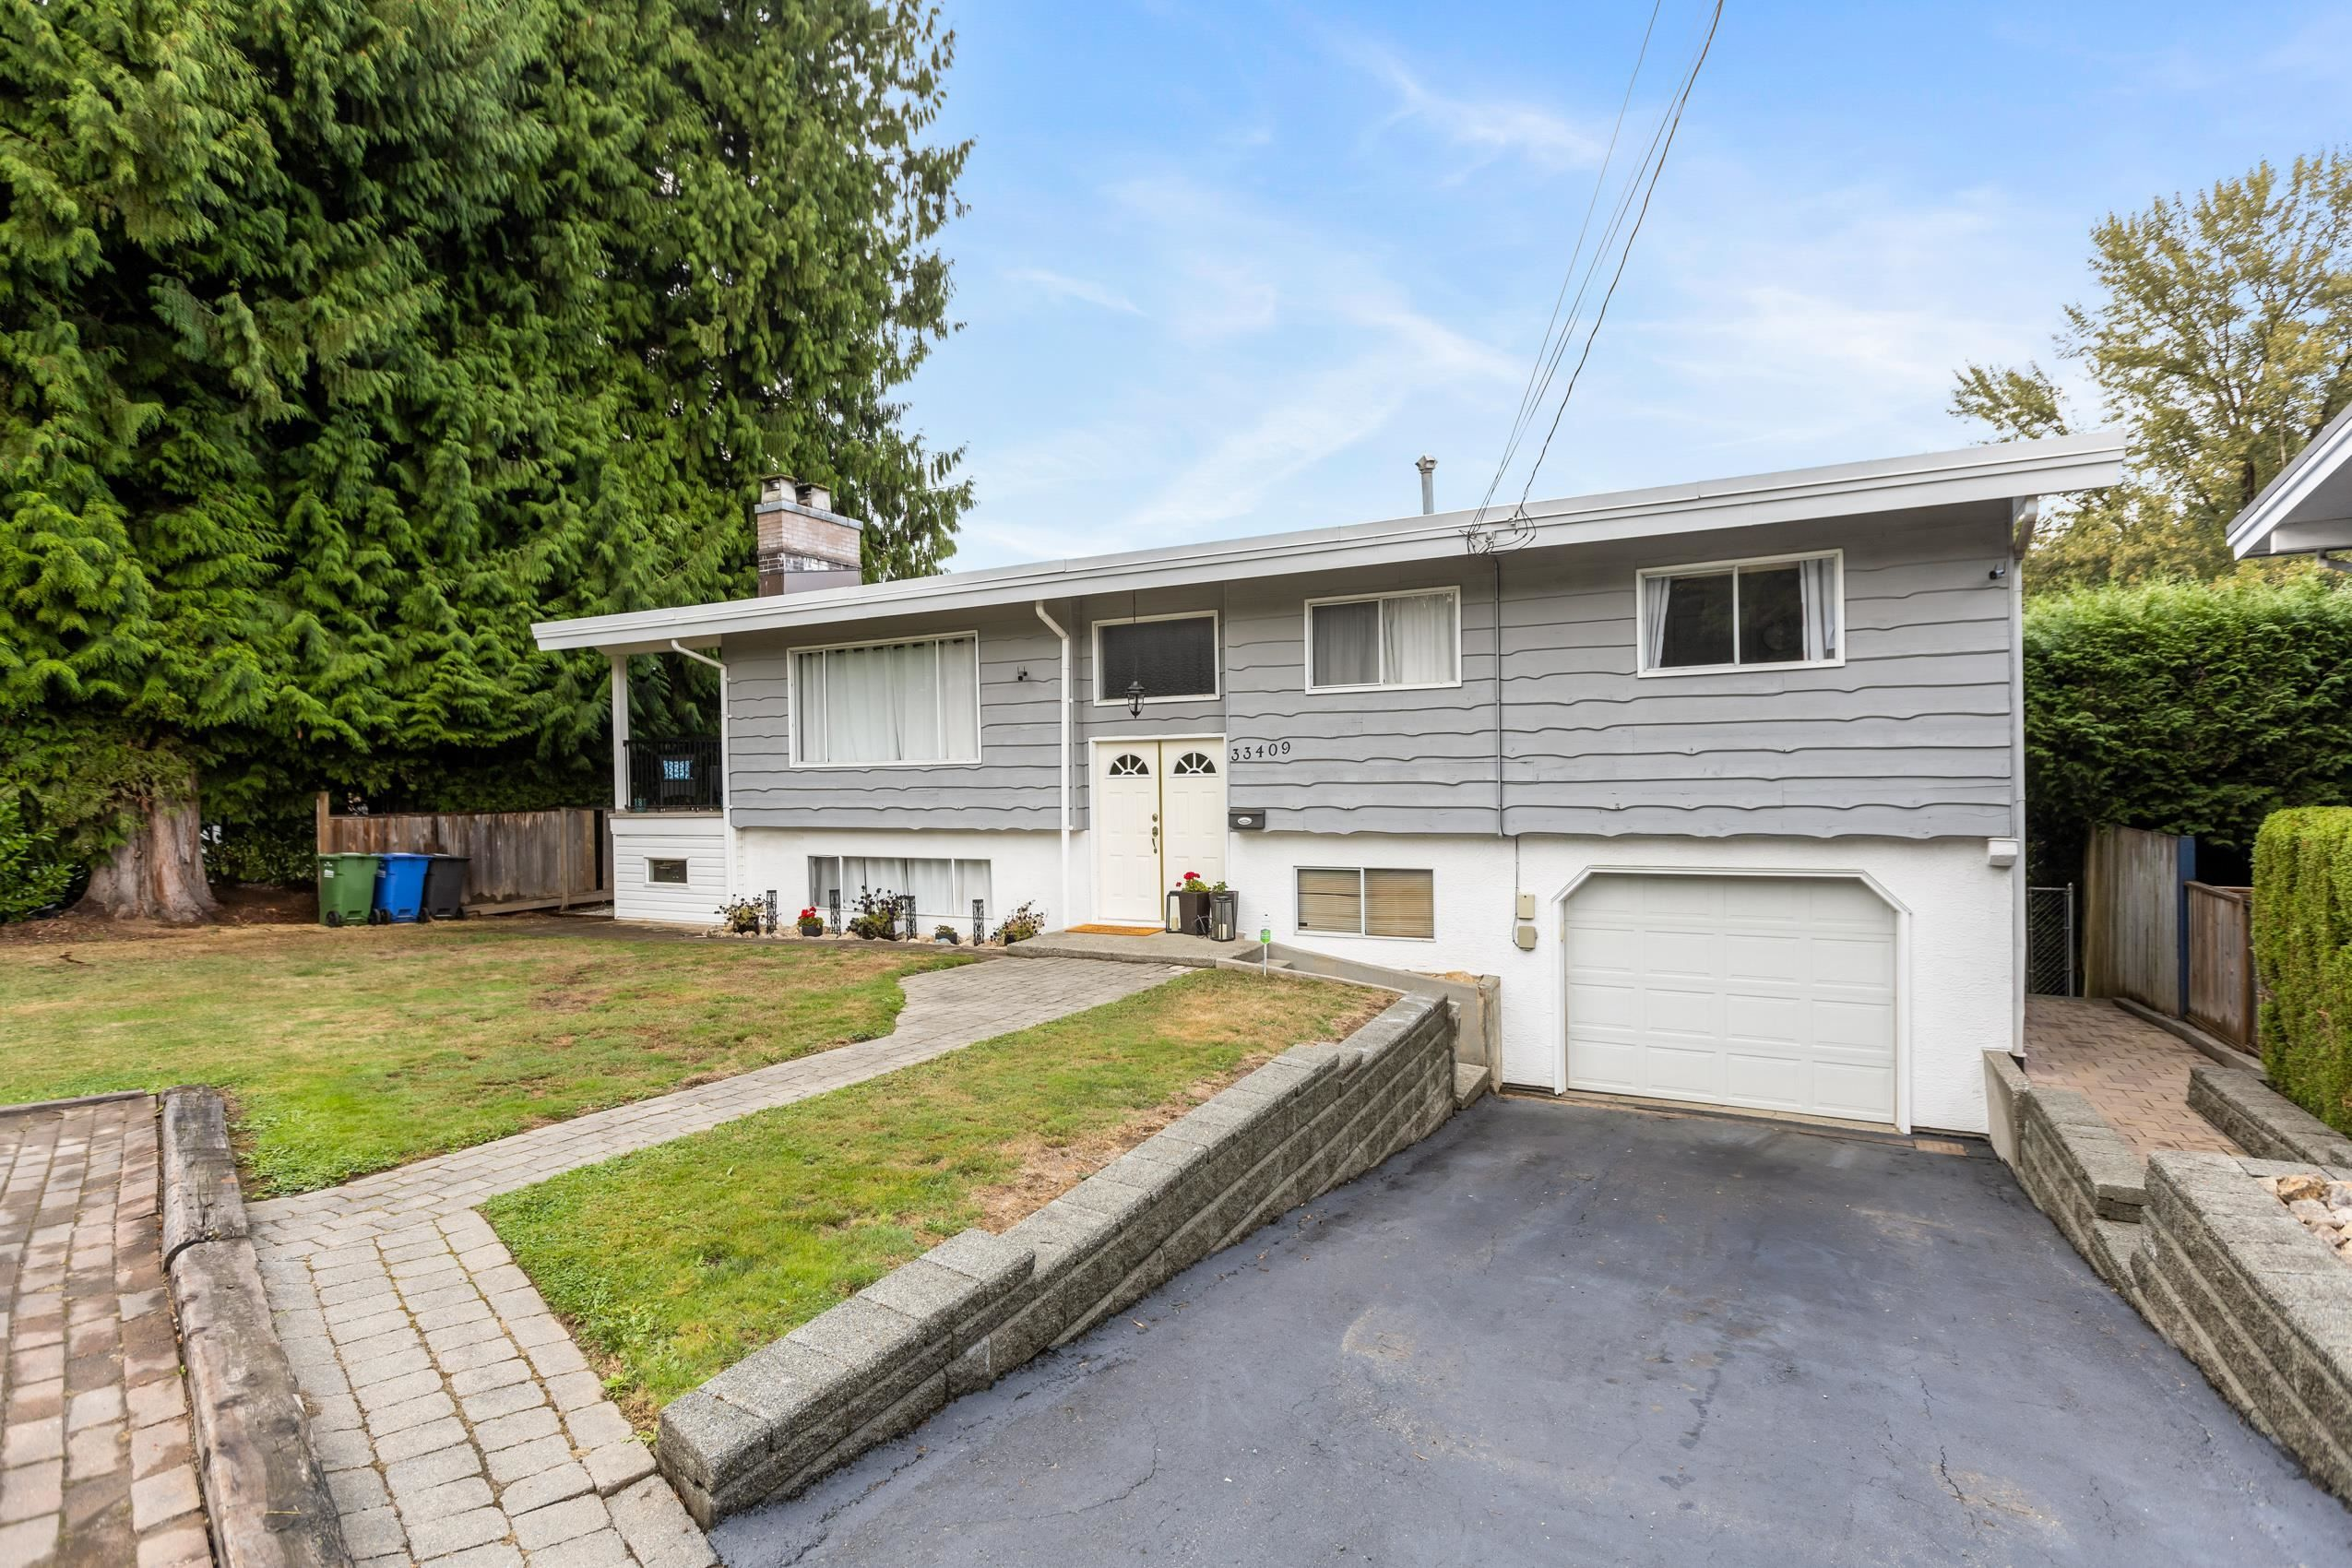 Main Photo: 33409 AVONDALE Avenue in Abbotsford: Central Abbotsford House for sale : MLS®# R2616656